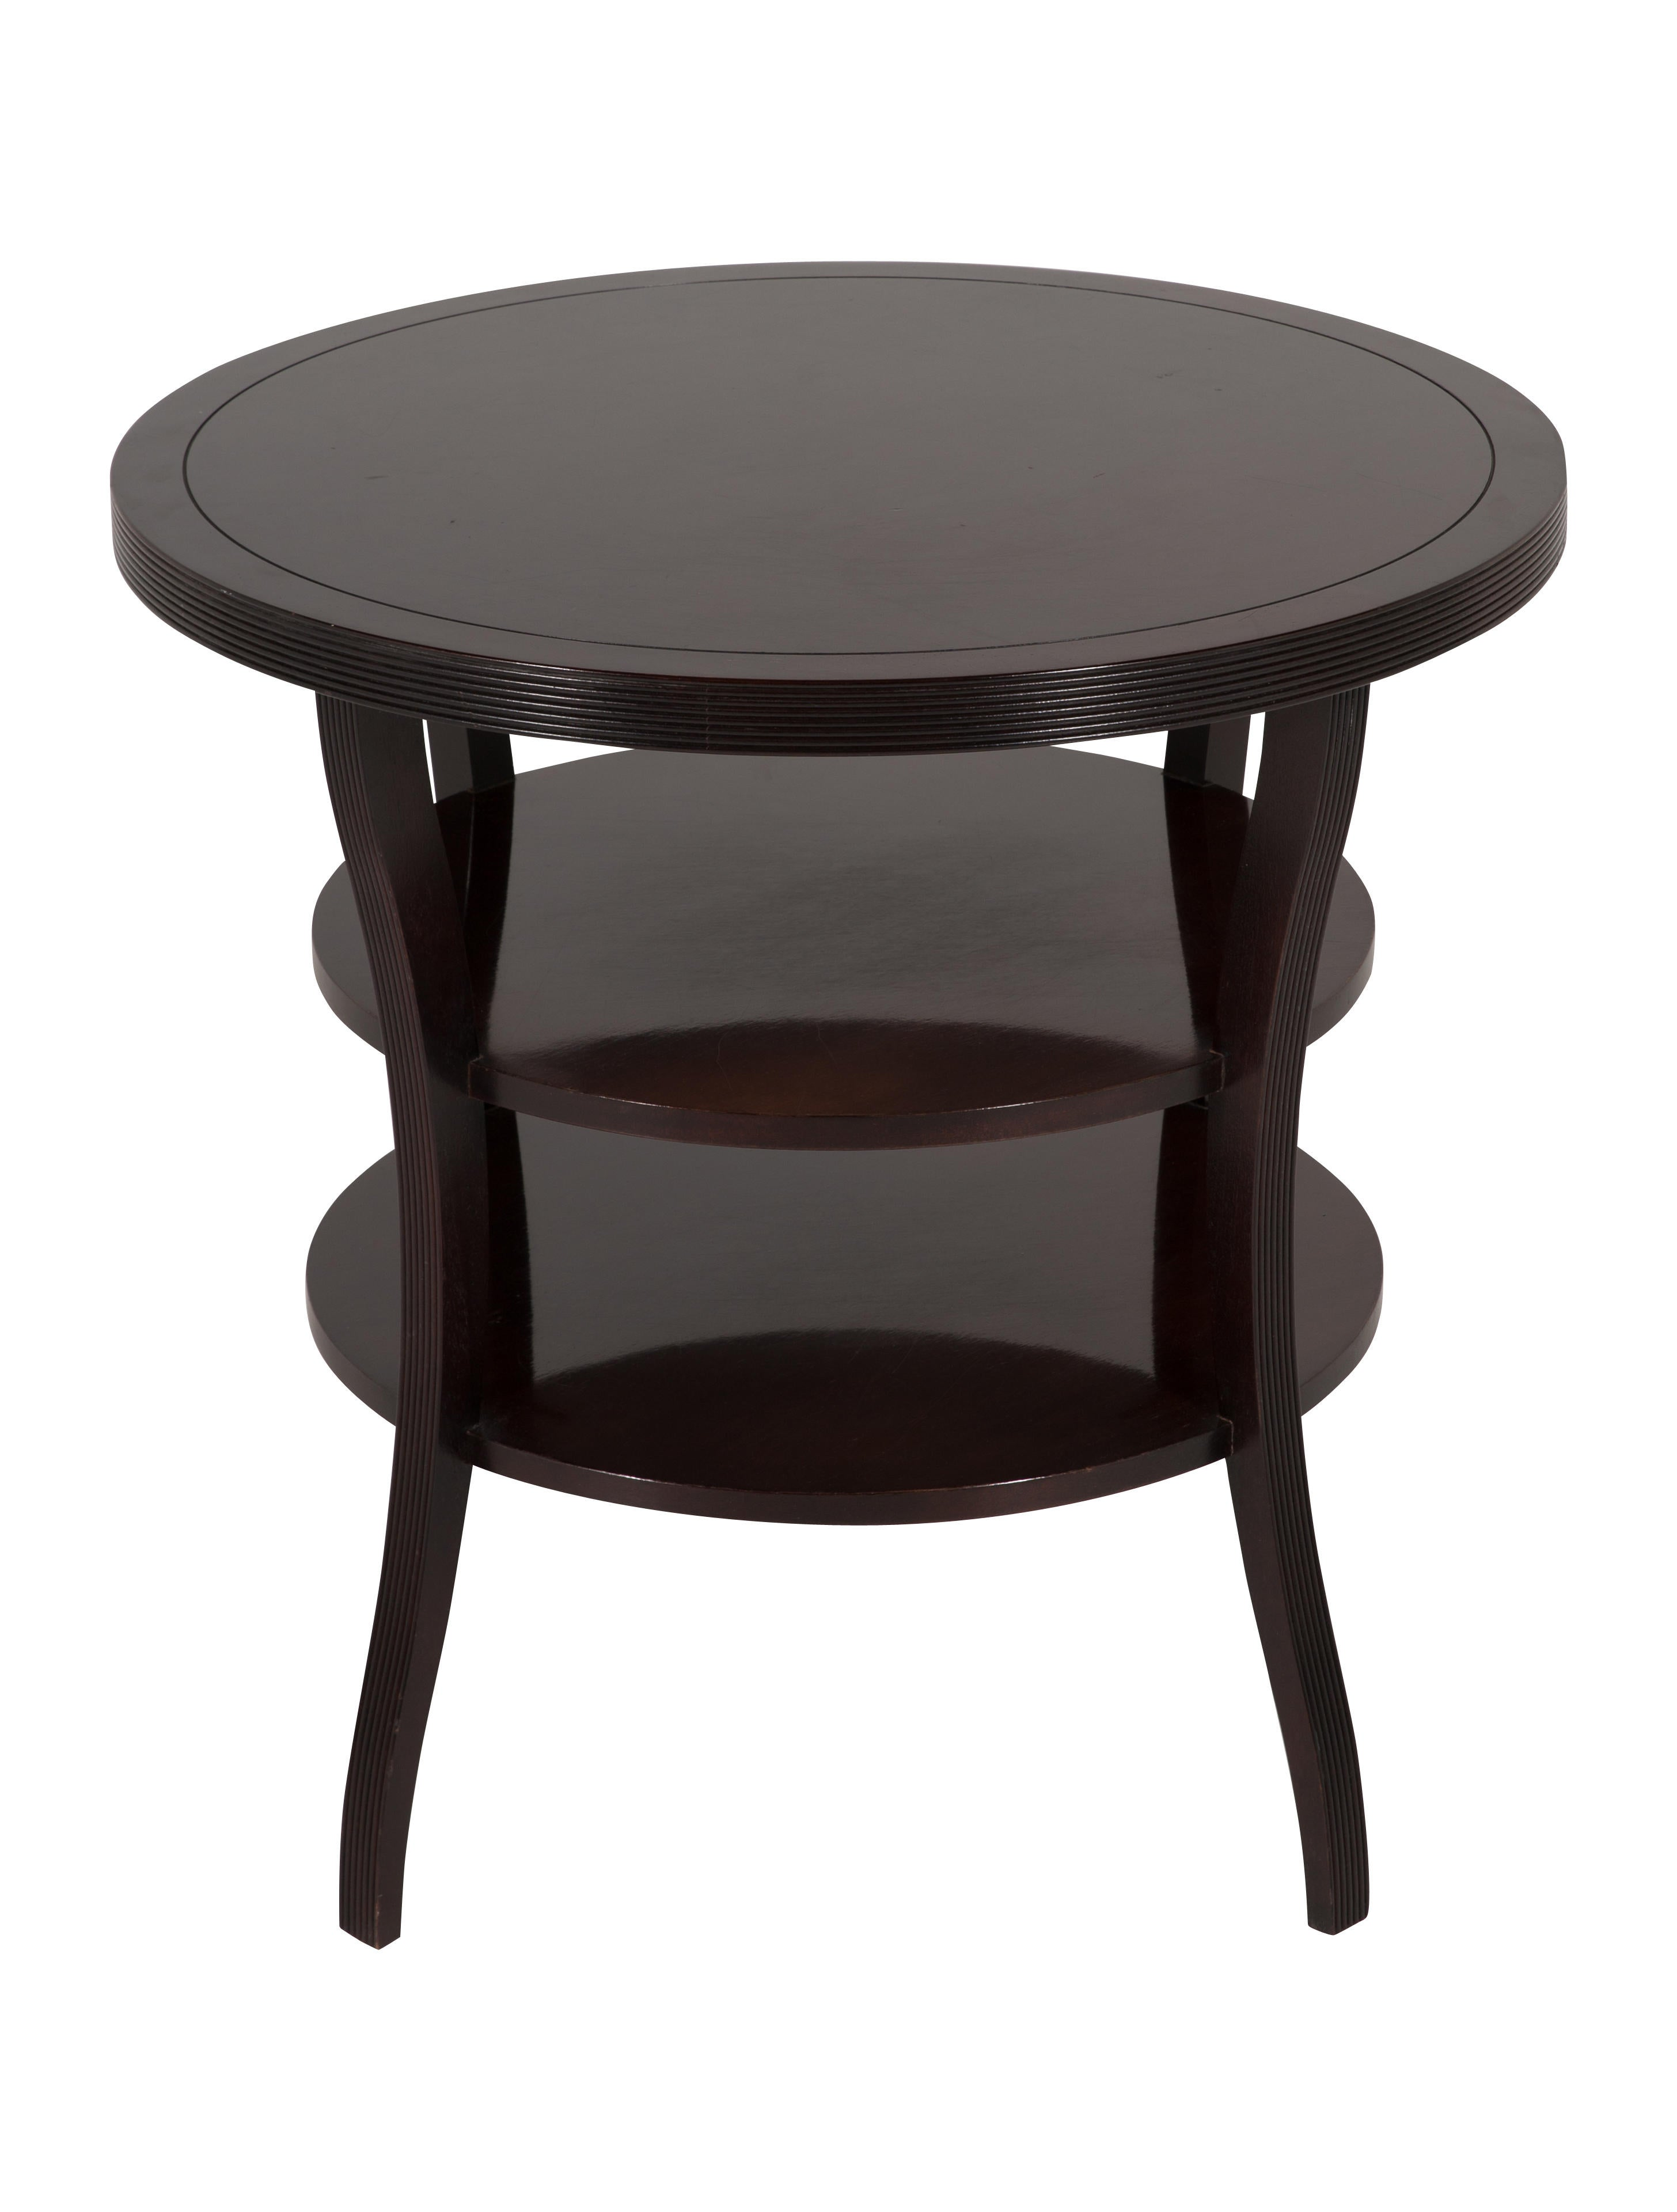 Baker barbara barry mahogany round tiered end table furniture barbara barry mahogany round tiered end table geotapseo Gallery